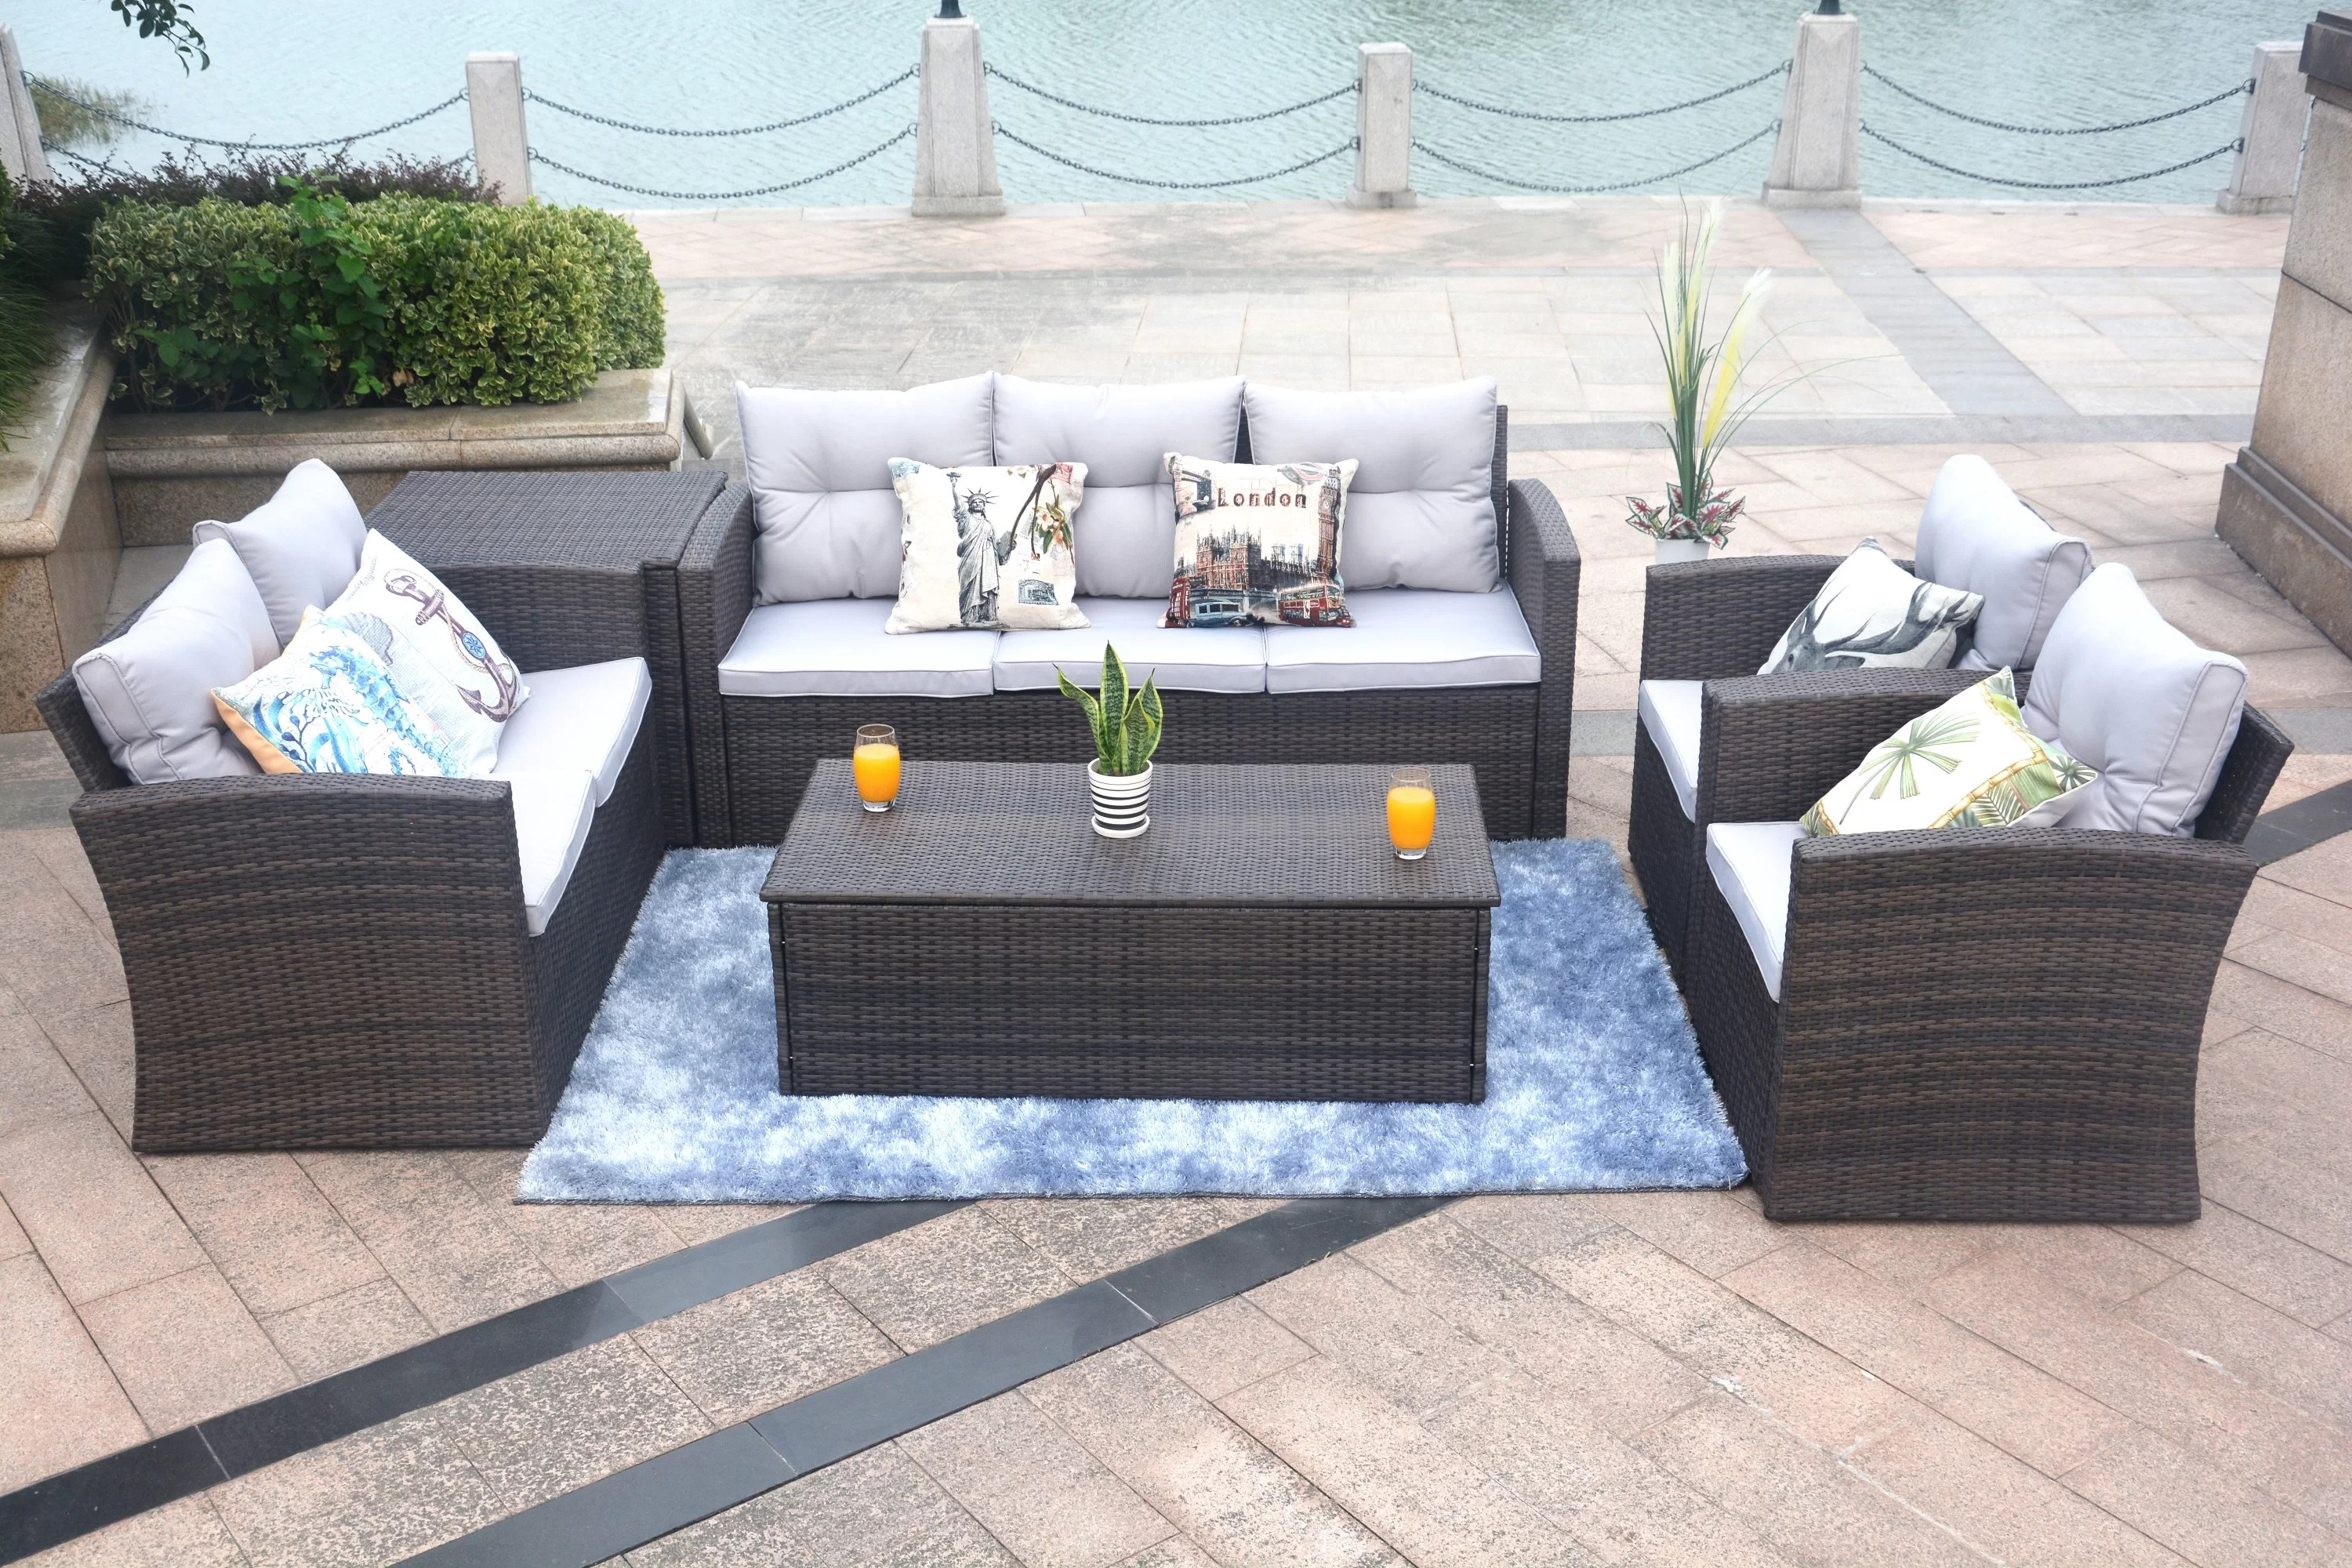 Baptist 6 Piece Rattan Sofa Set With Cushions Baptist 6 Piece Rattan Sofa Set With Cushions